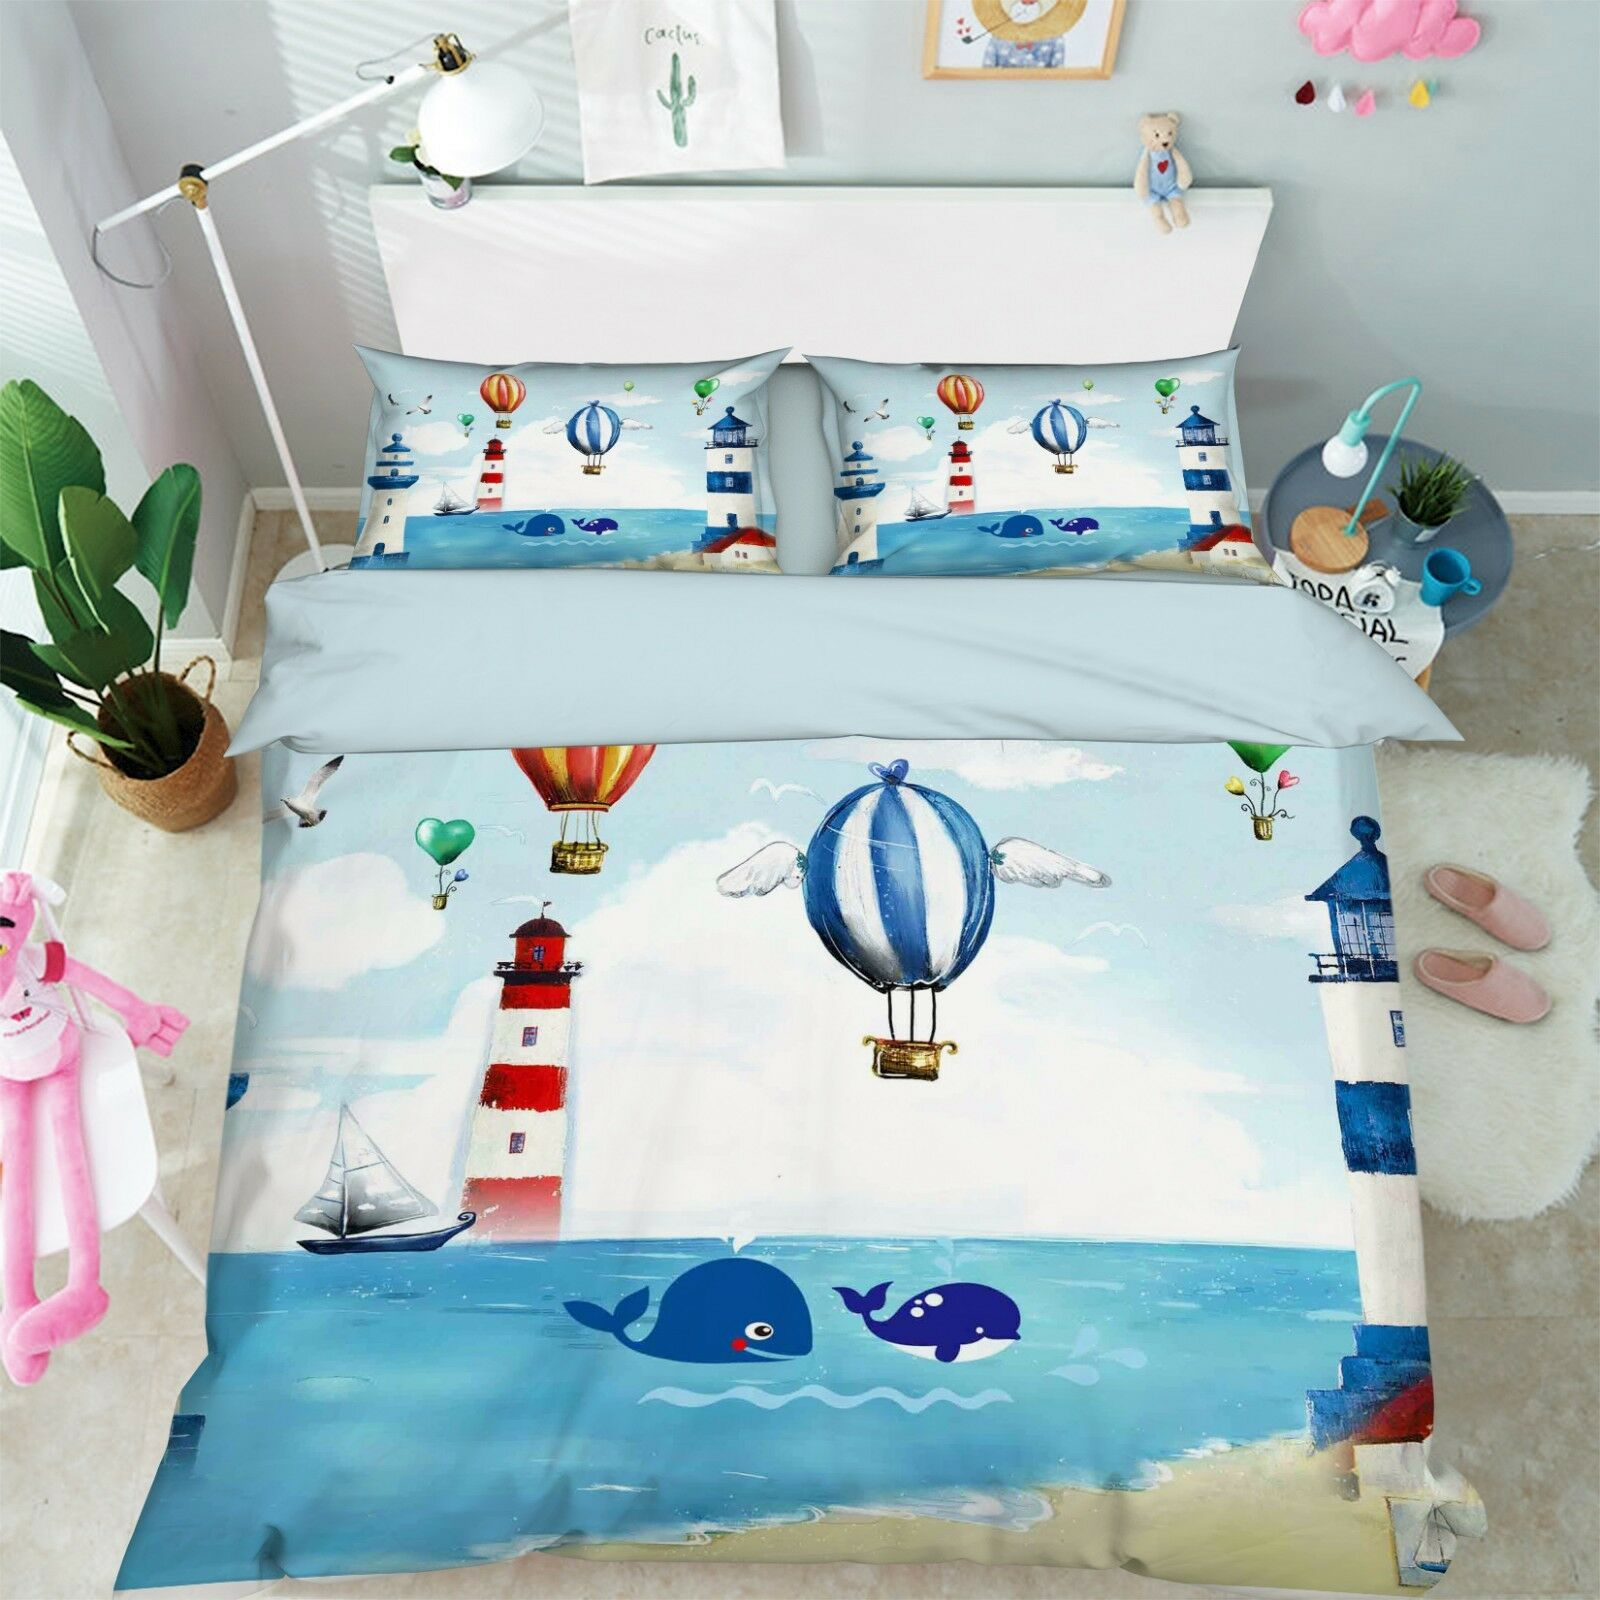 3D Lighthouse Kid 88 Bed Pillowcases Quilt Duvet Cover Set Single Queen King CA